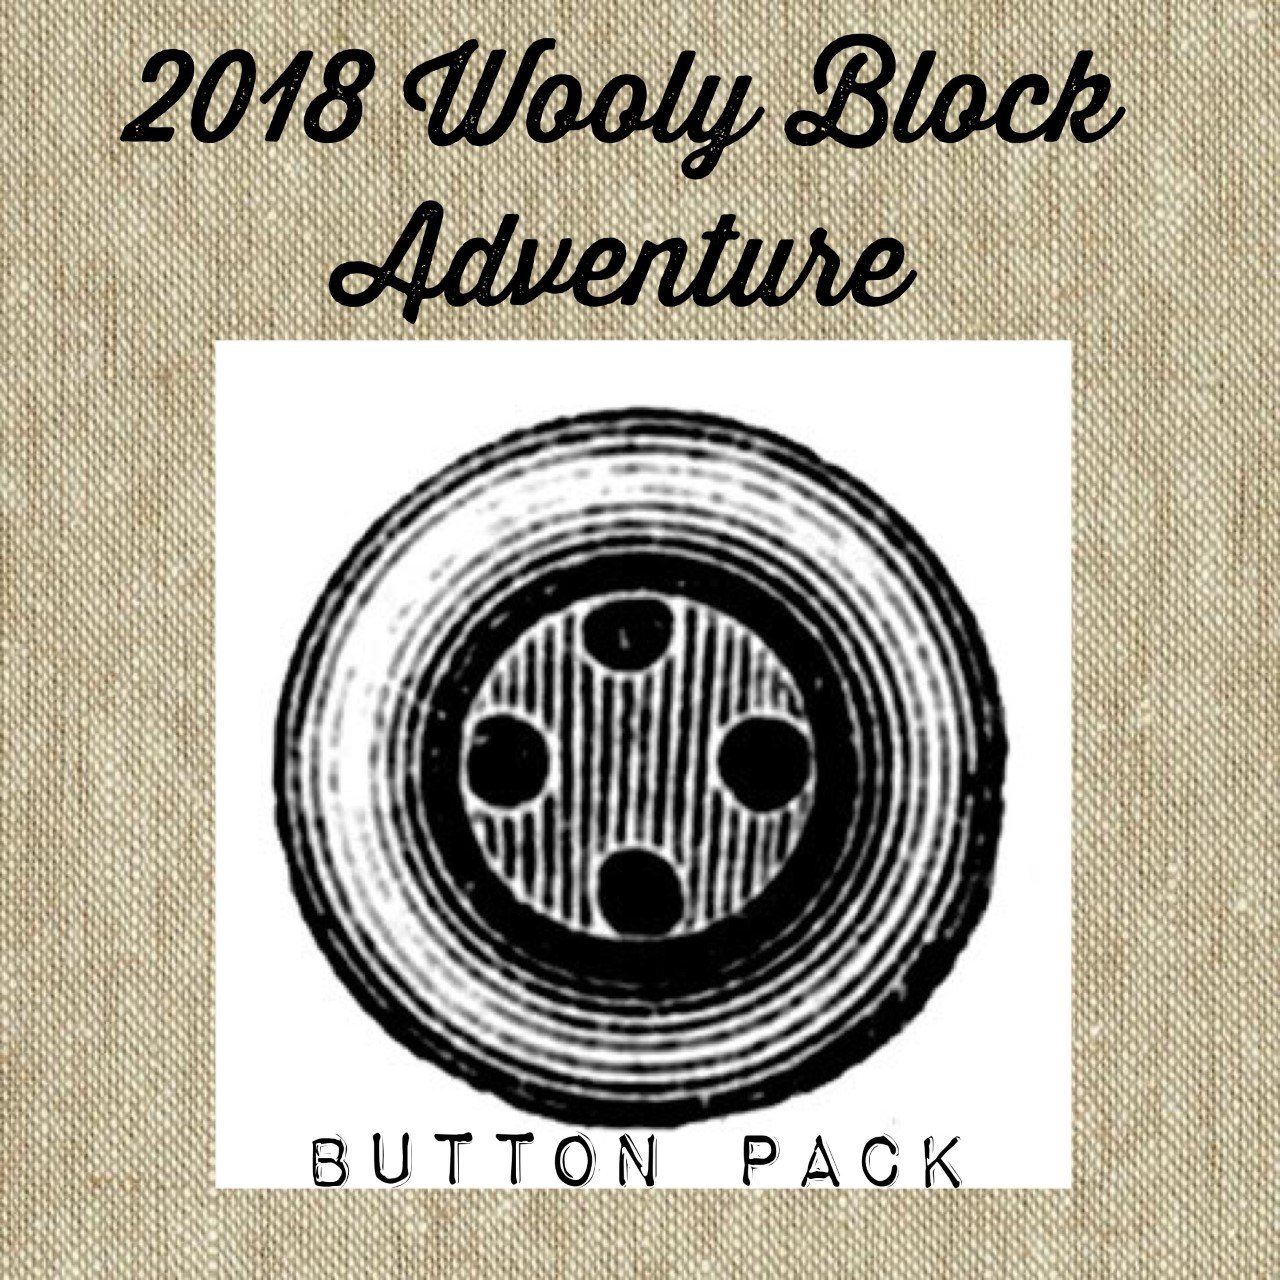 2018 Wooly Block Adventure Button Pack